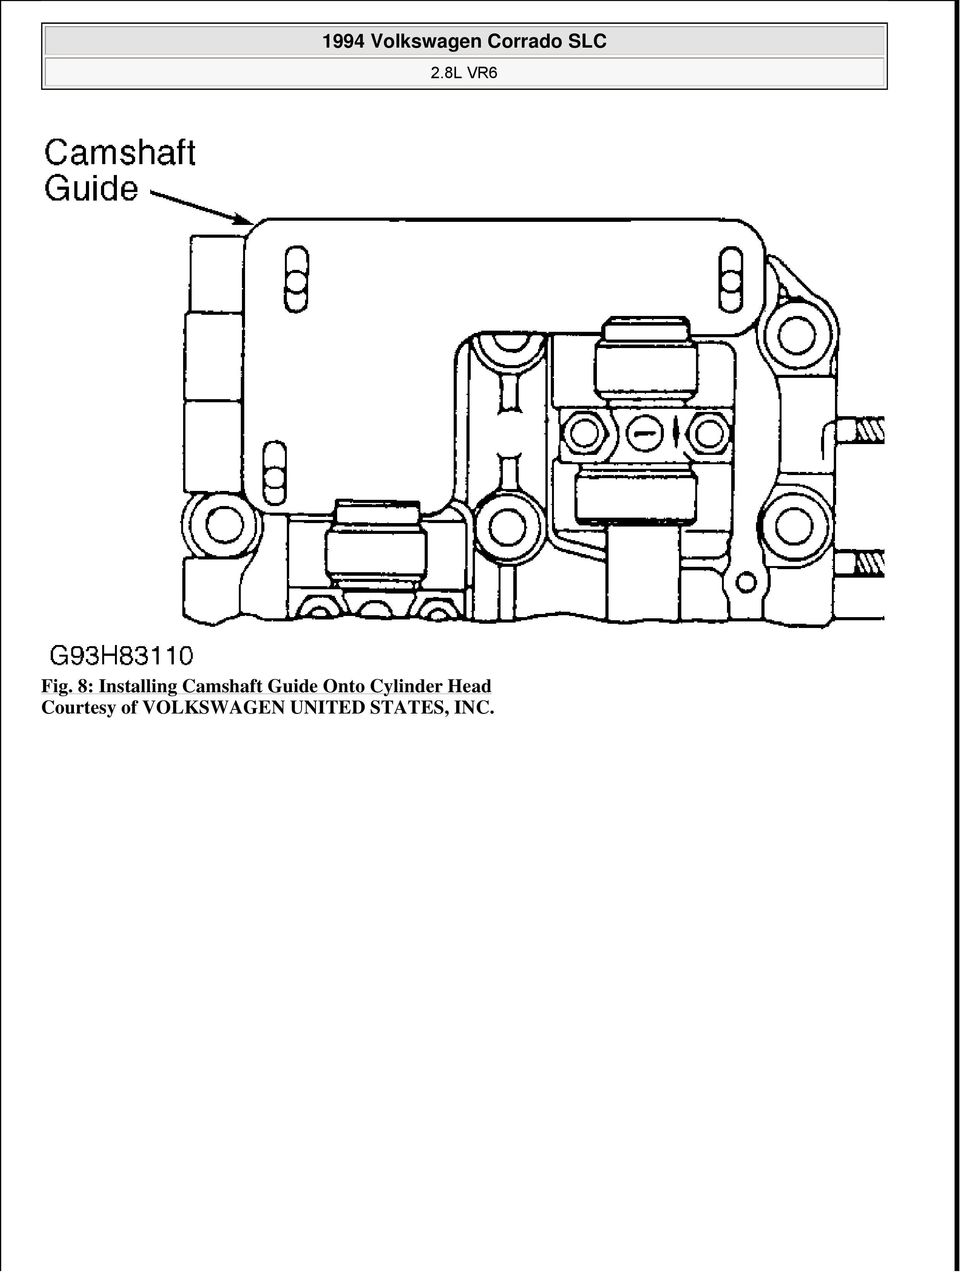 1994 Volkswagen Corrado Slc Pdf Vr6 Engine Timing Diagram 9 Exploded View Of Chain Related Components Installation